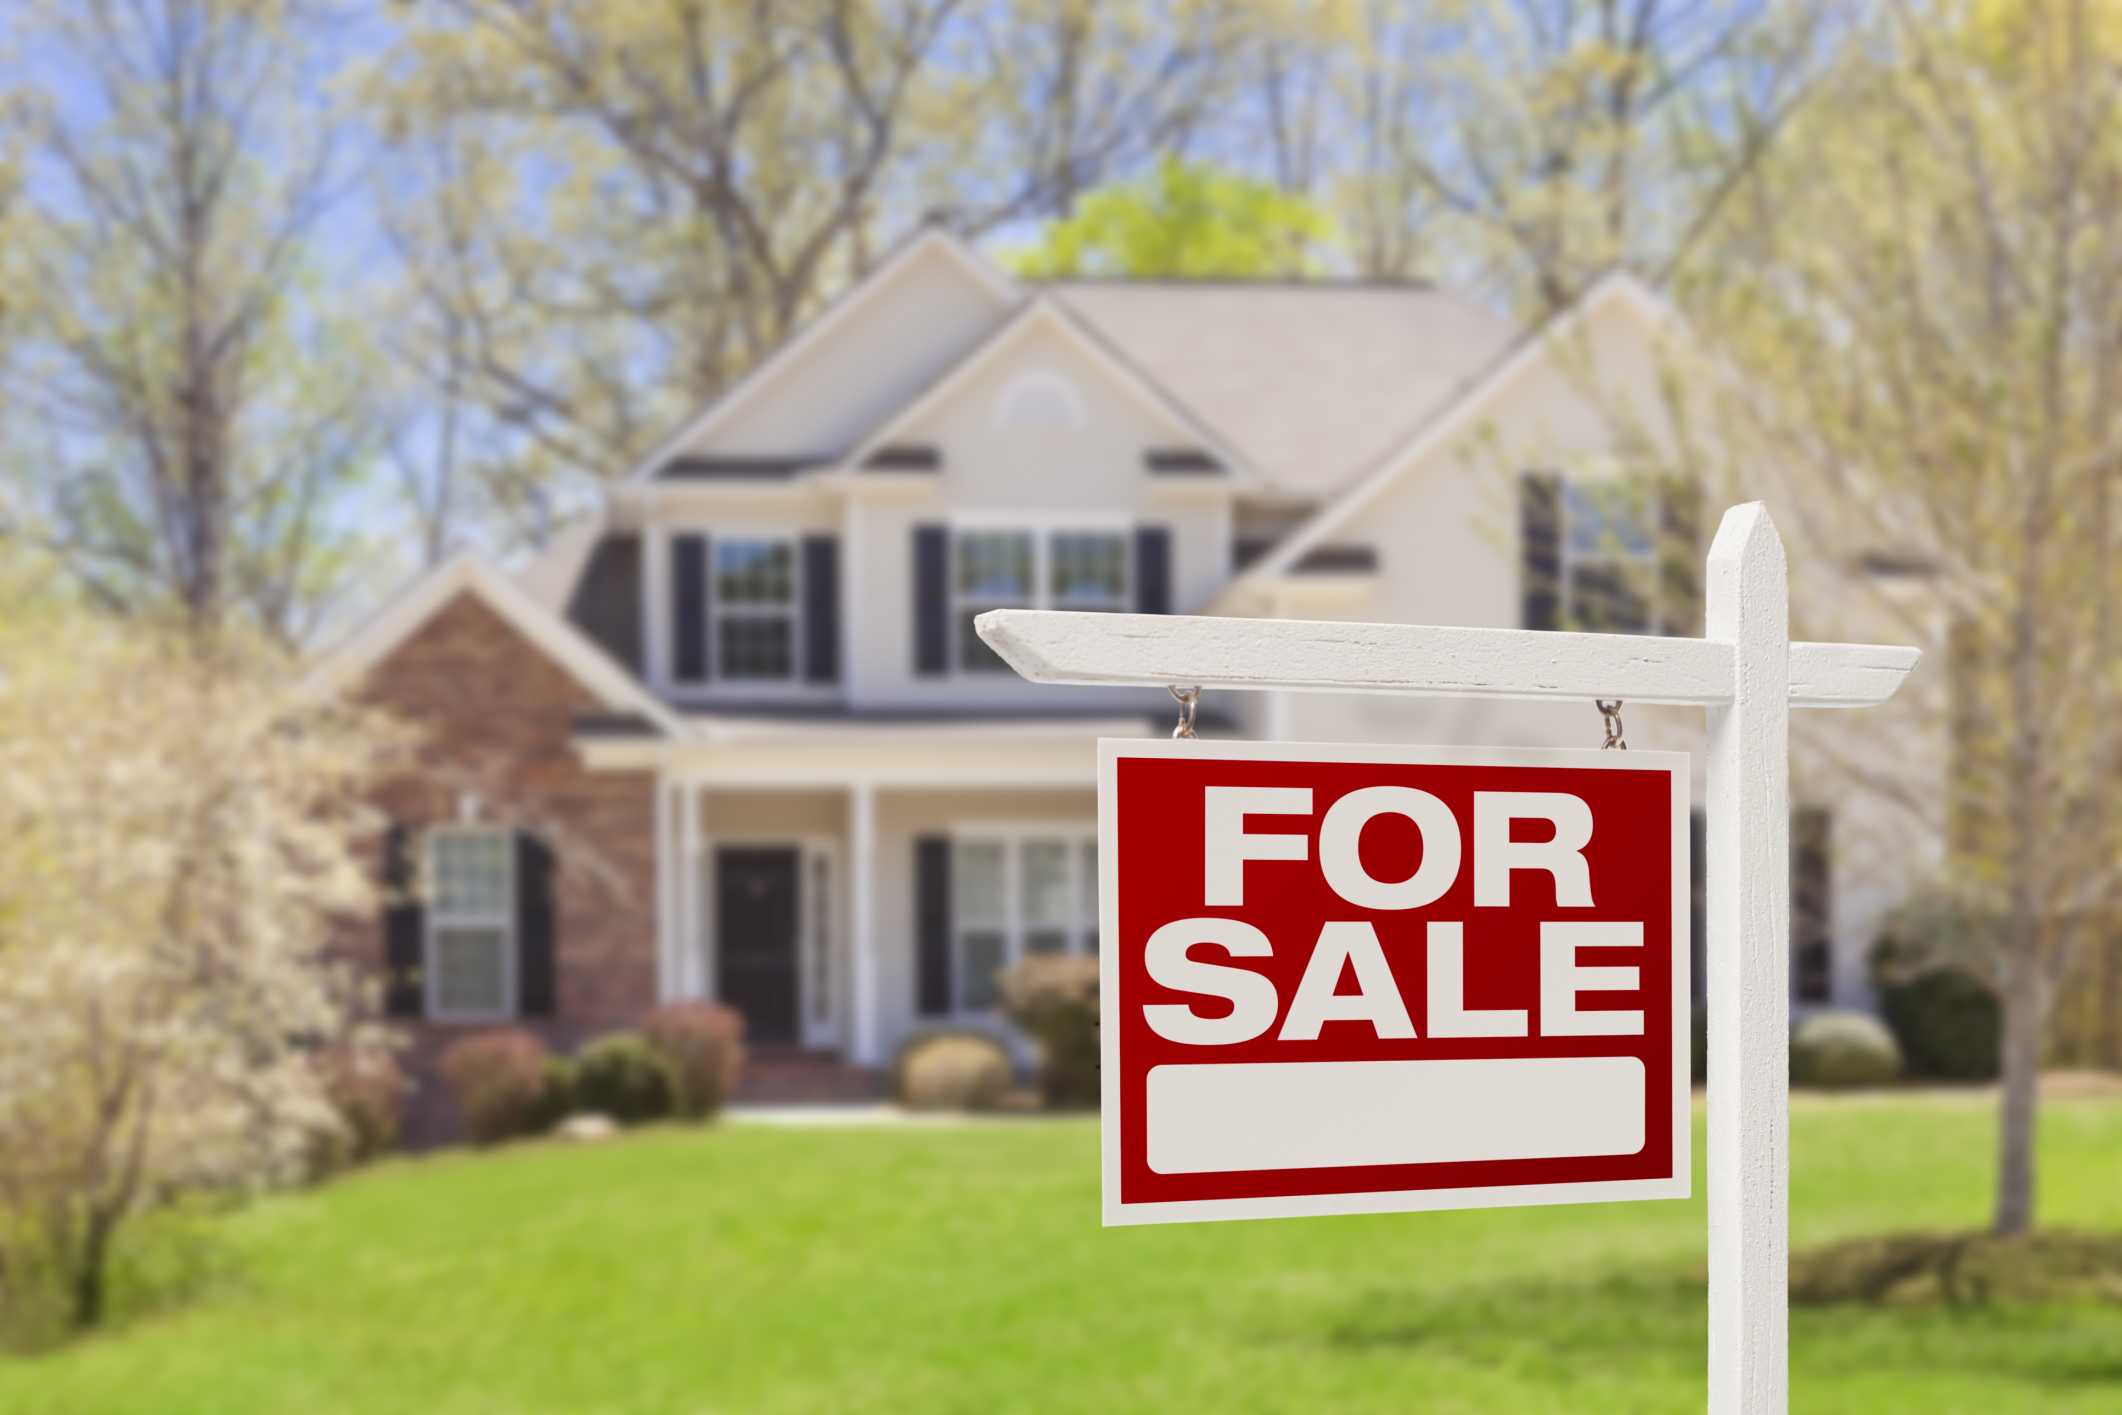 Homes For Sale By Owner >> Reason To Not Try For Sale By Owner St Louis And St Charles